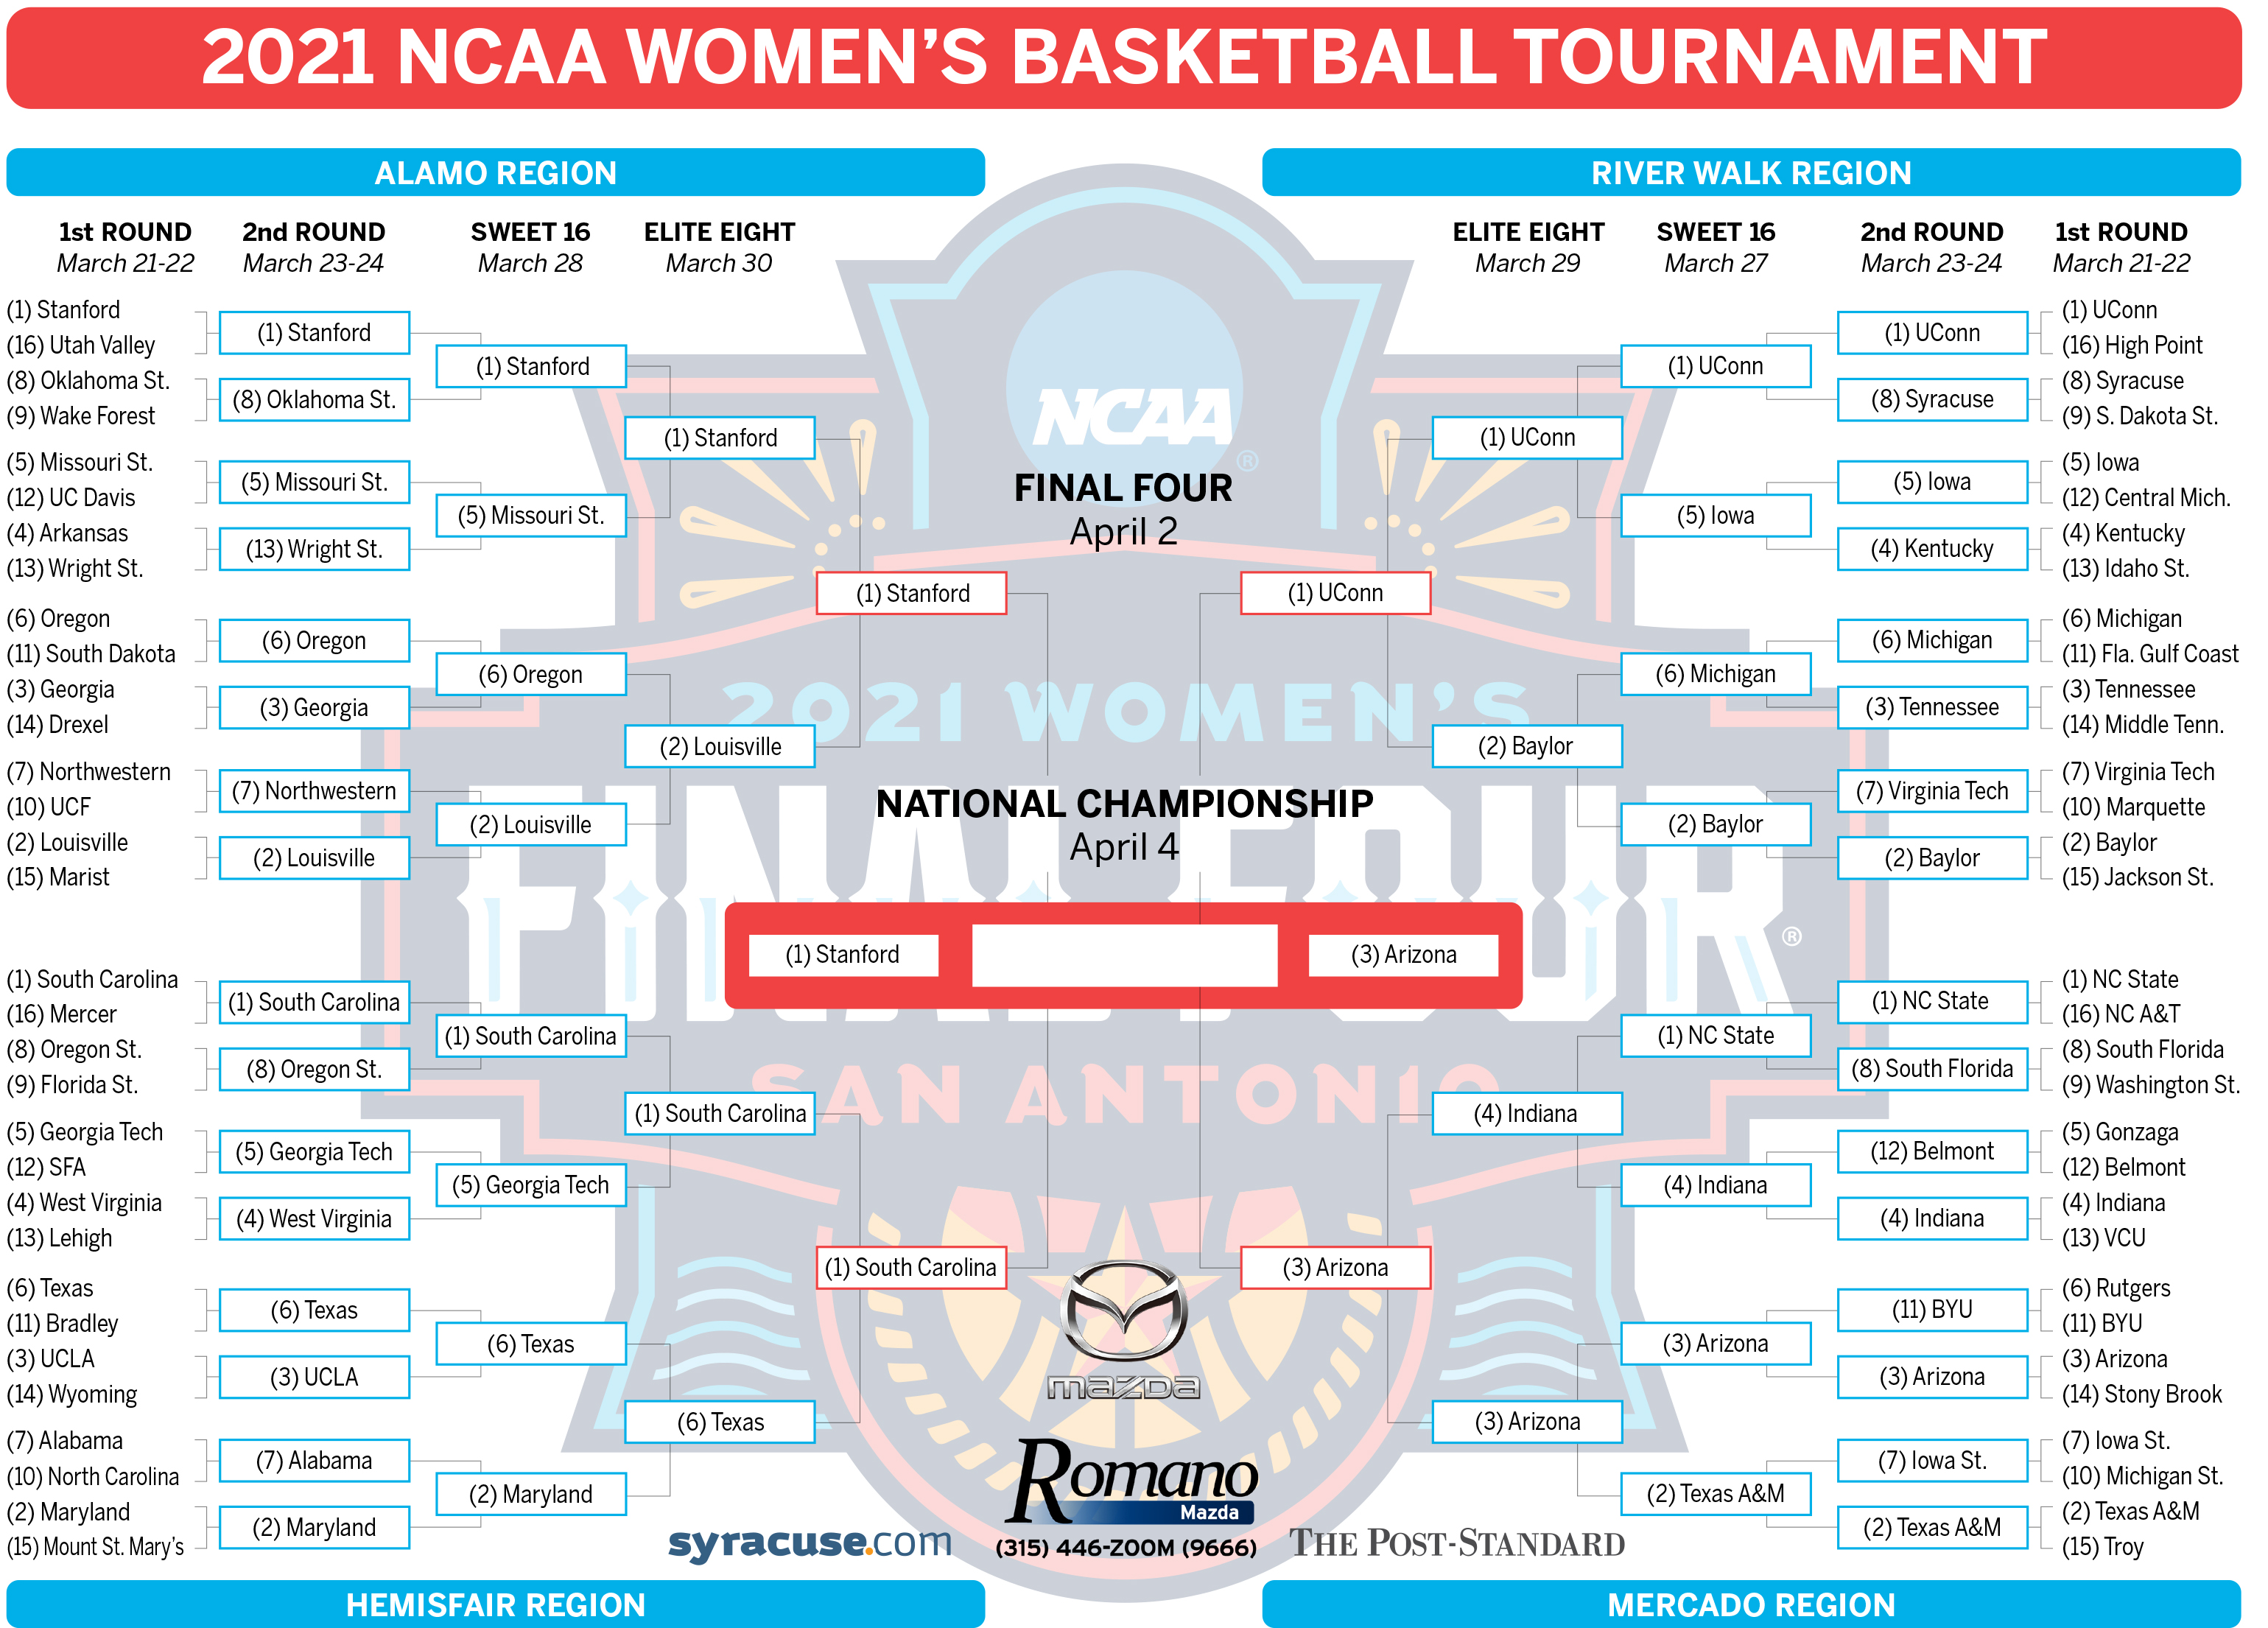 2021 NCAA Women's Basketball Tournament Bracket